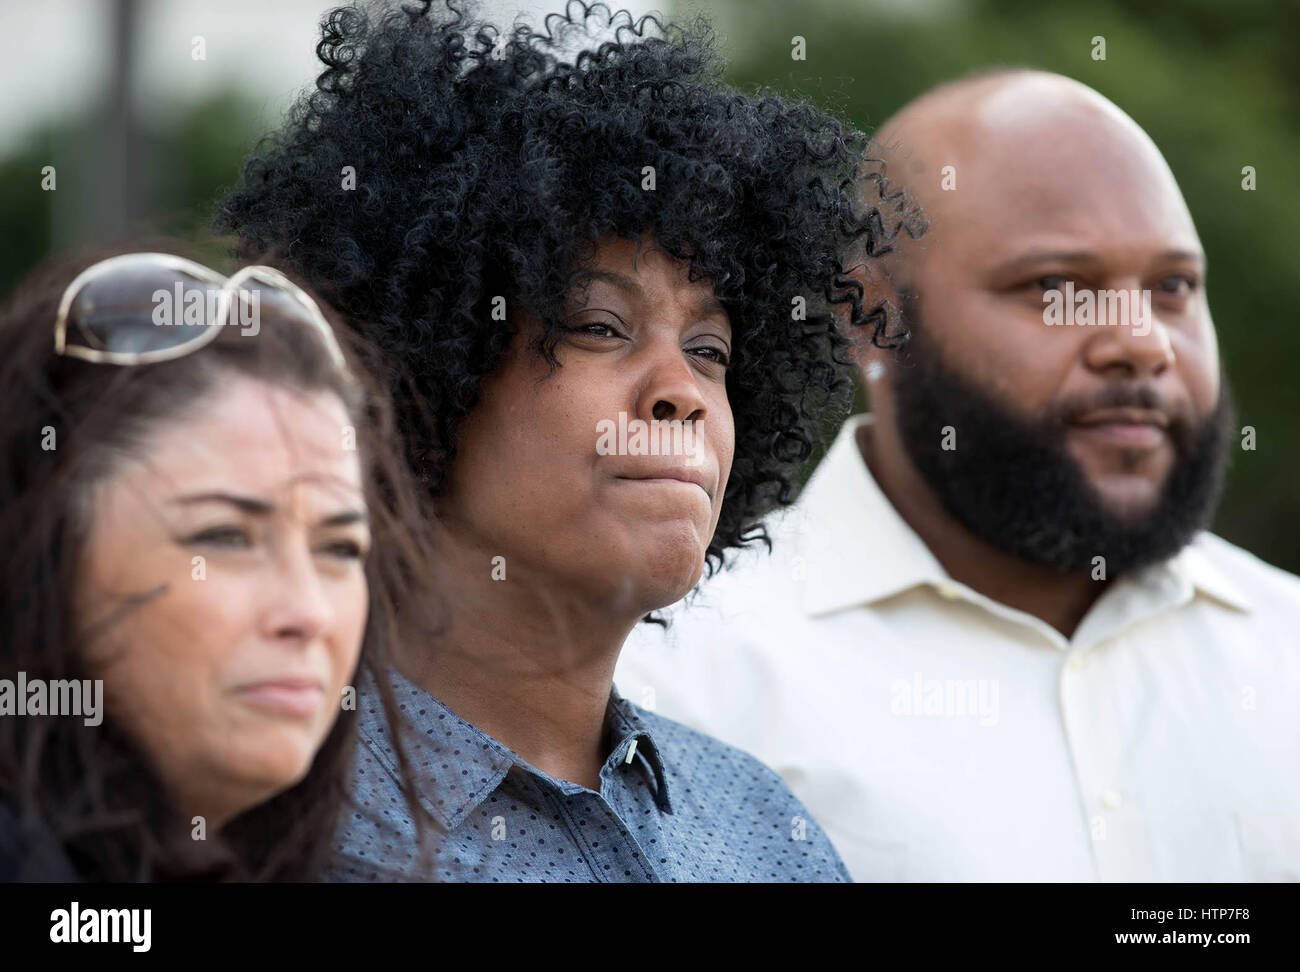 West Palm Beach, Florida, USA. 14th Mar, 2017. Felicia Mitchell, mother of Henry Bennett, III, (center) with attorney - Stock Image